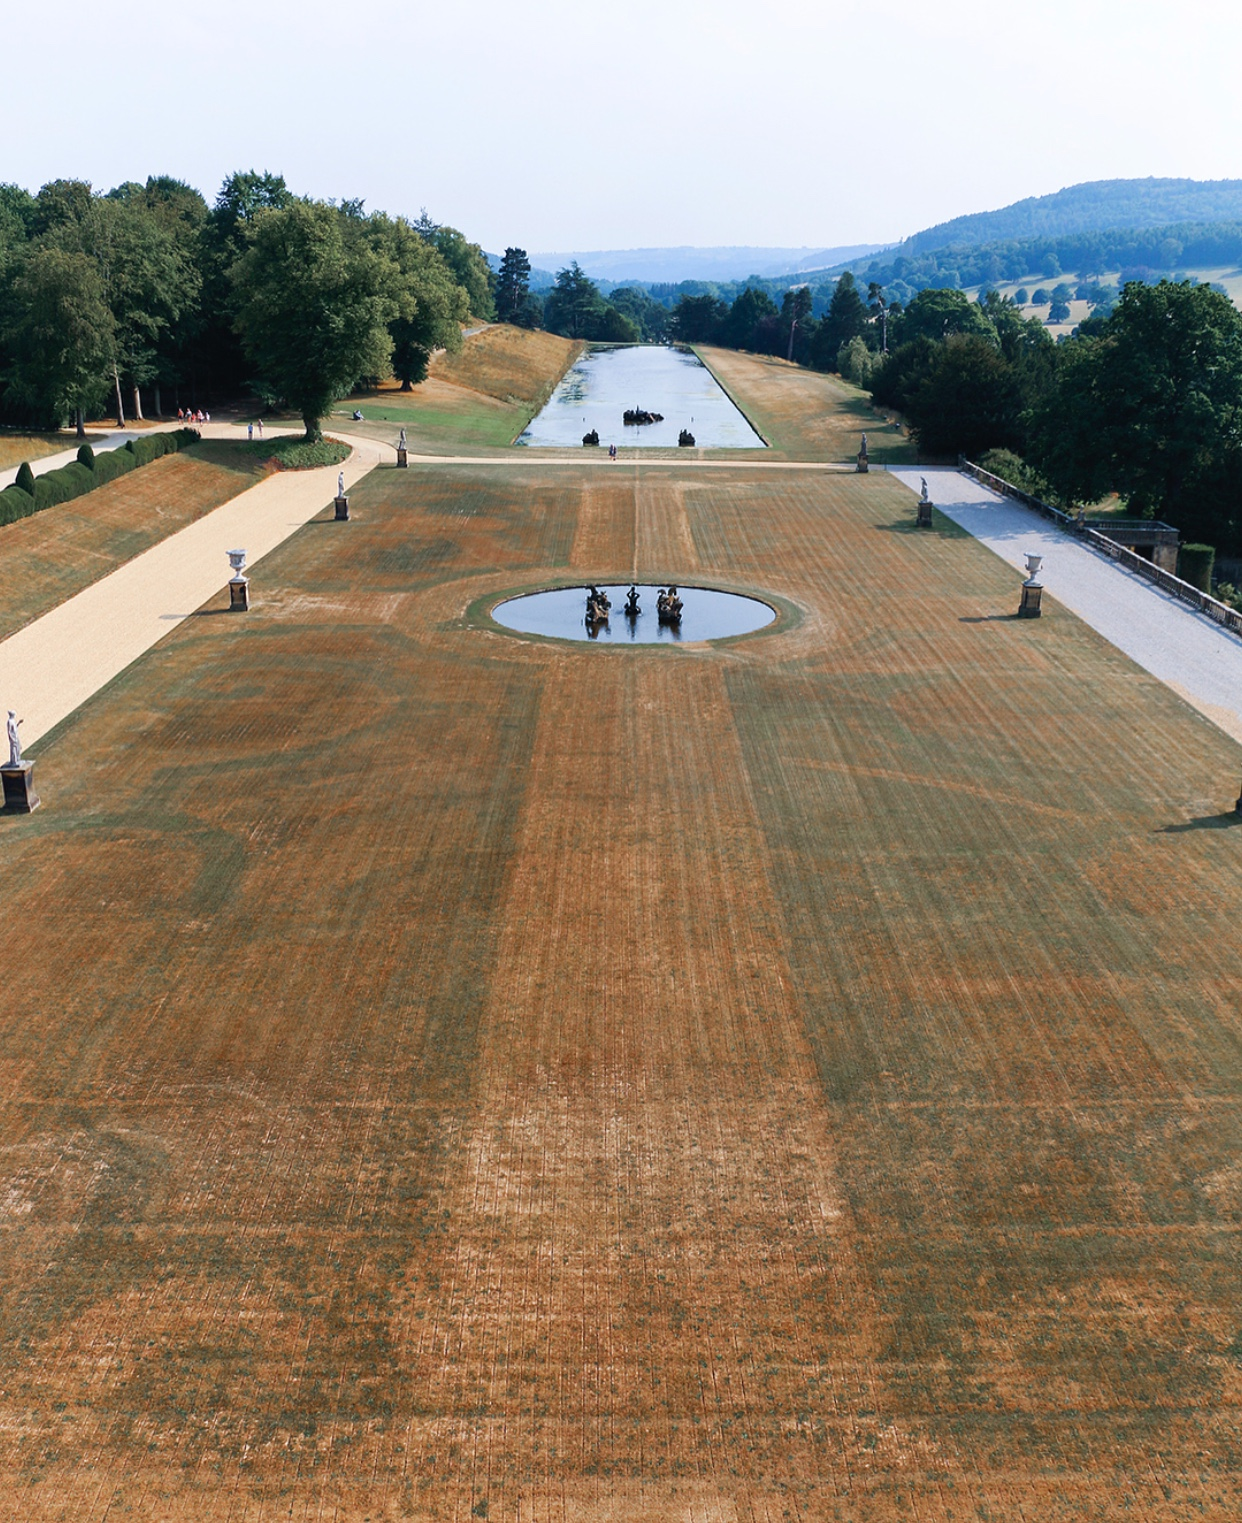 The lawn at Chatsworth in Derbyshire displays scorch marks of a 17th century parterre - (Photo: © Chatsworth House)